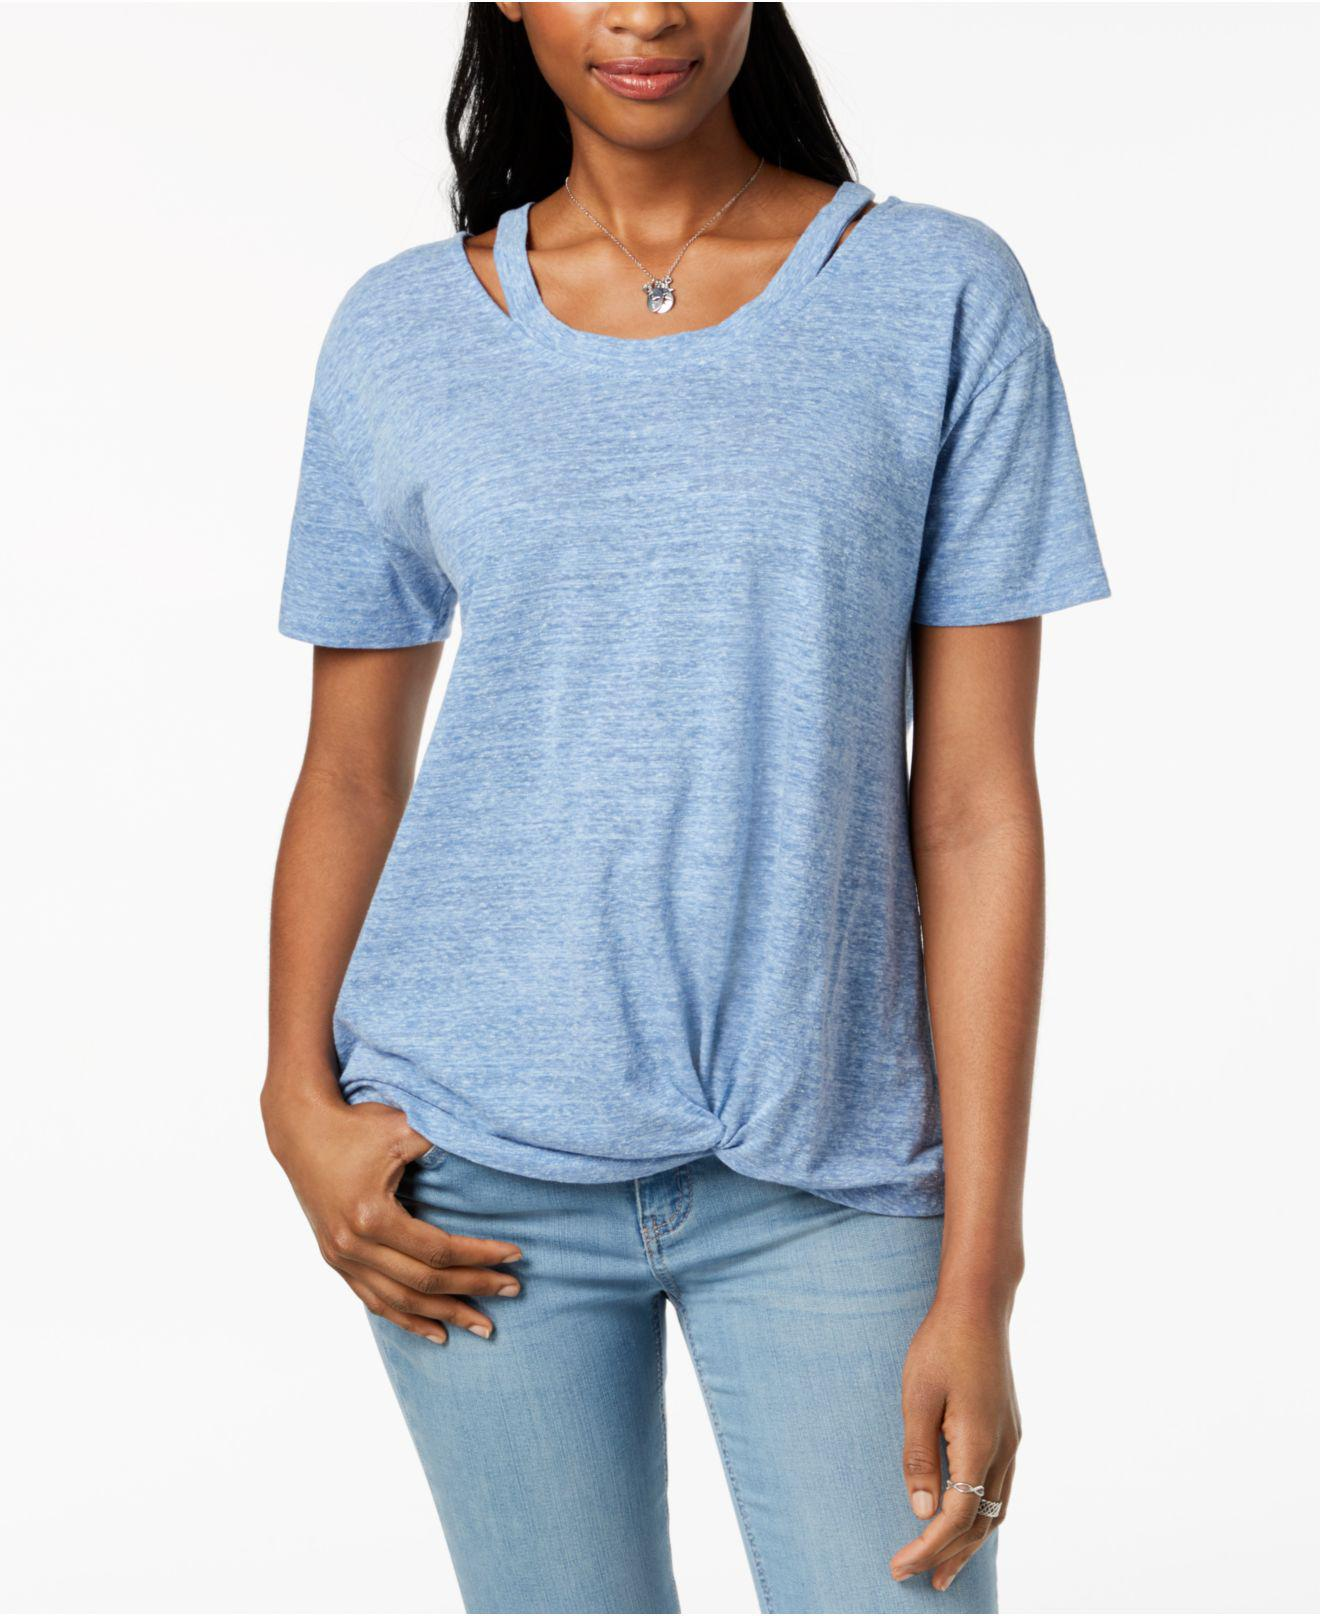 Find great deals on eBay for high low t shirt. Shop with confidence.